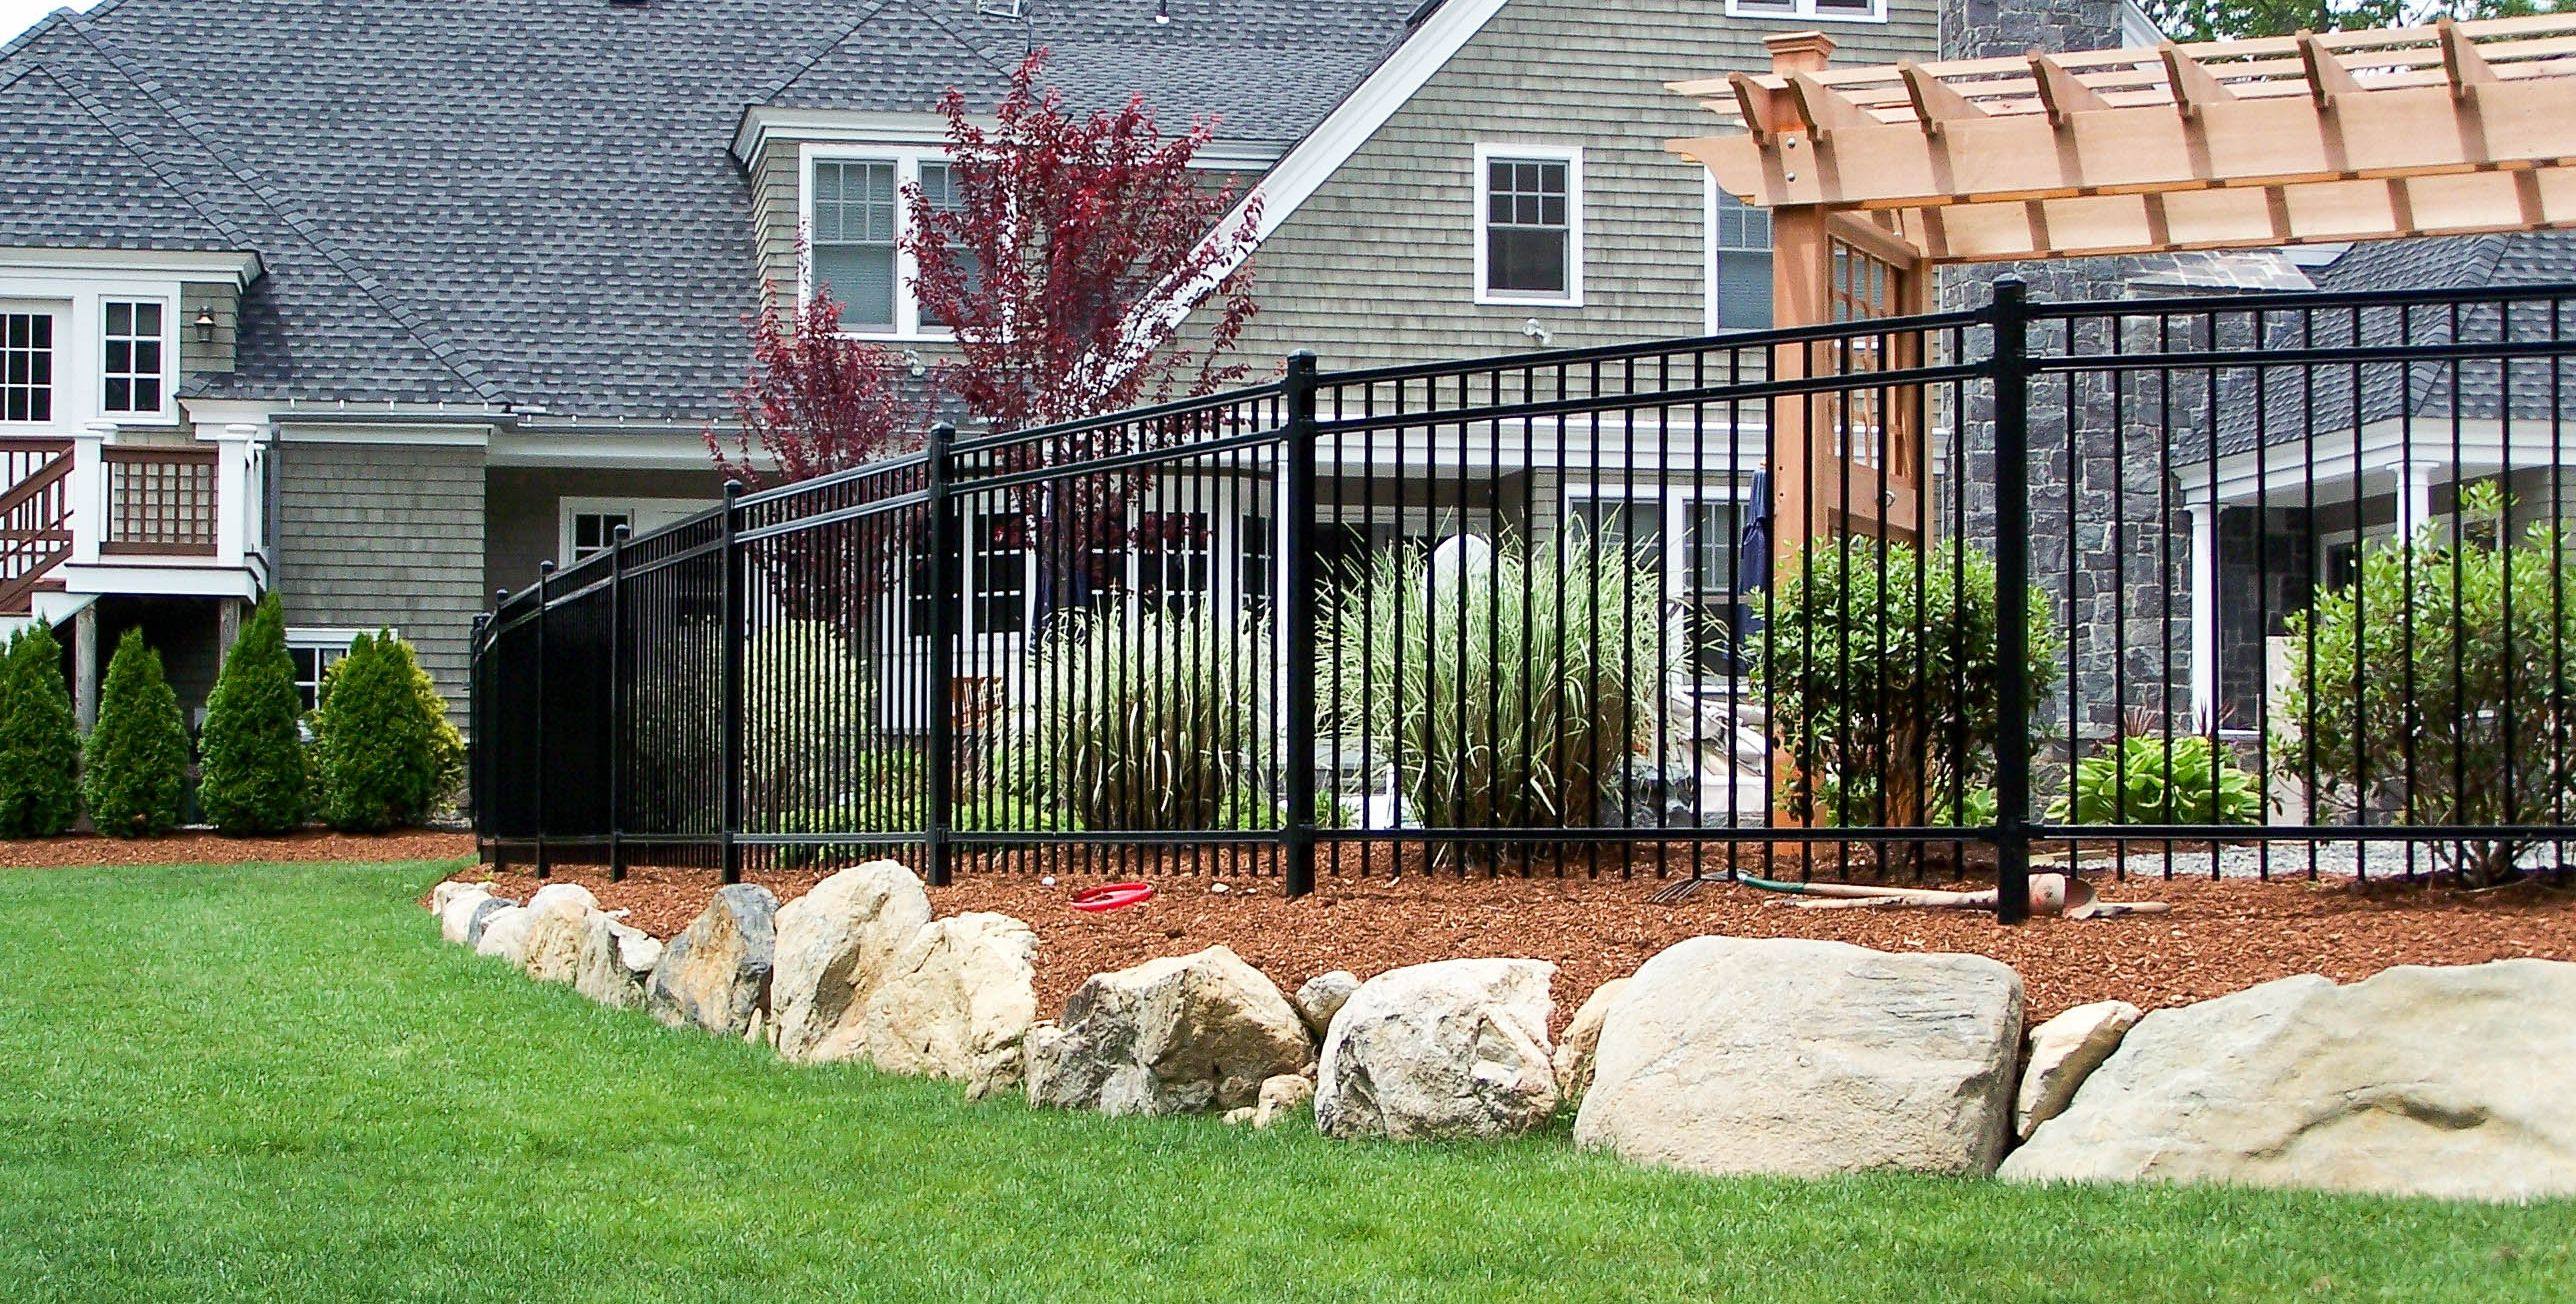 Montage Is Ameristar S Steel Wrought Iron Look Ornamental Fence For Residential Fence Types Backyard Fences Iron Fence Wrought Iron Fences